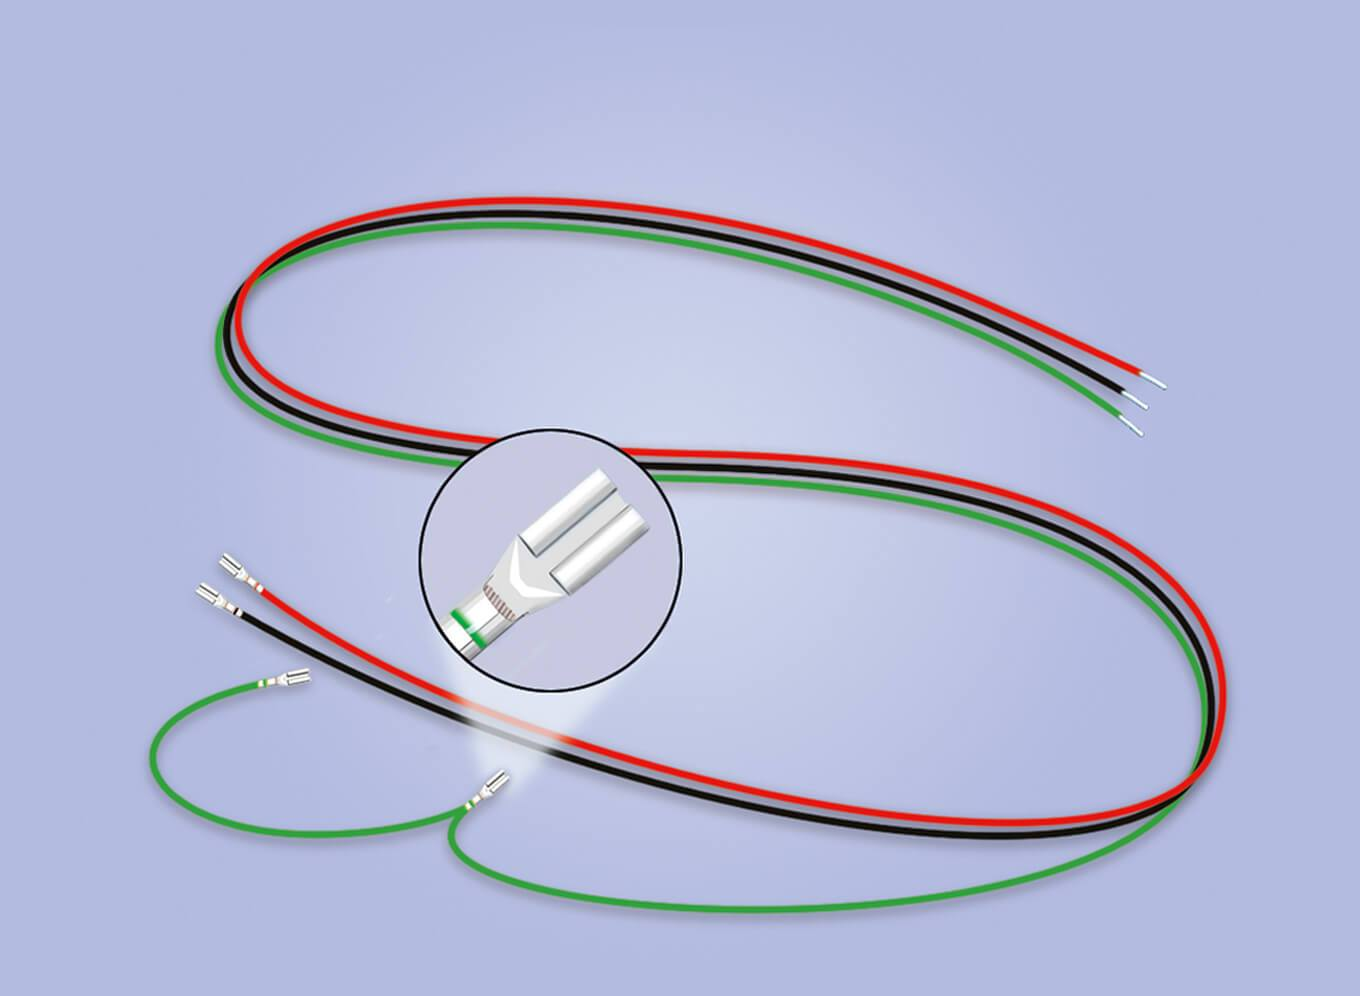 Model Railways & Trains Peco PL-34 Wiring Loom for Turnout ... on